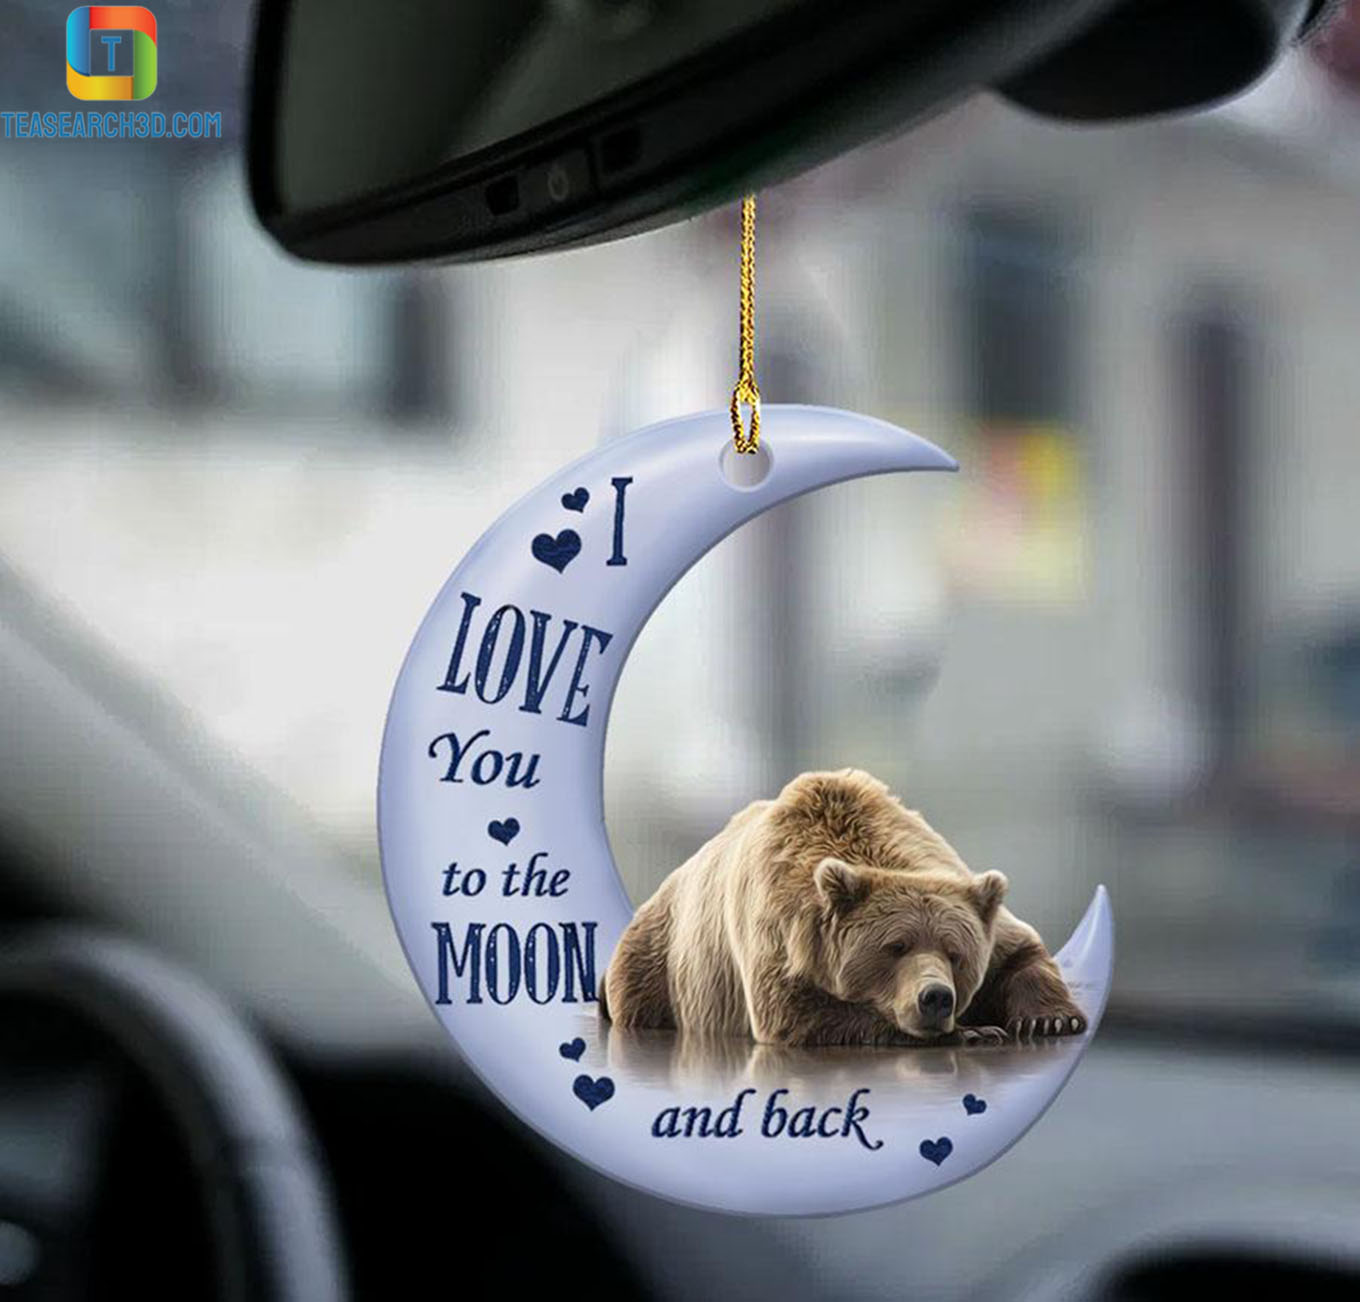 Grizzly bear I love you to the moon and back car hanging ornament 2